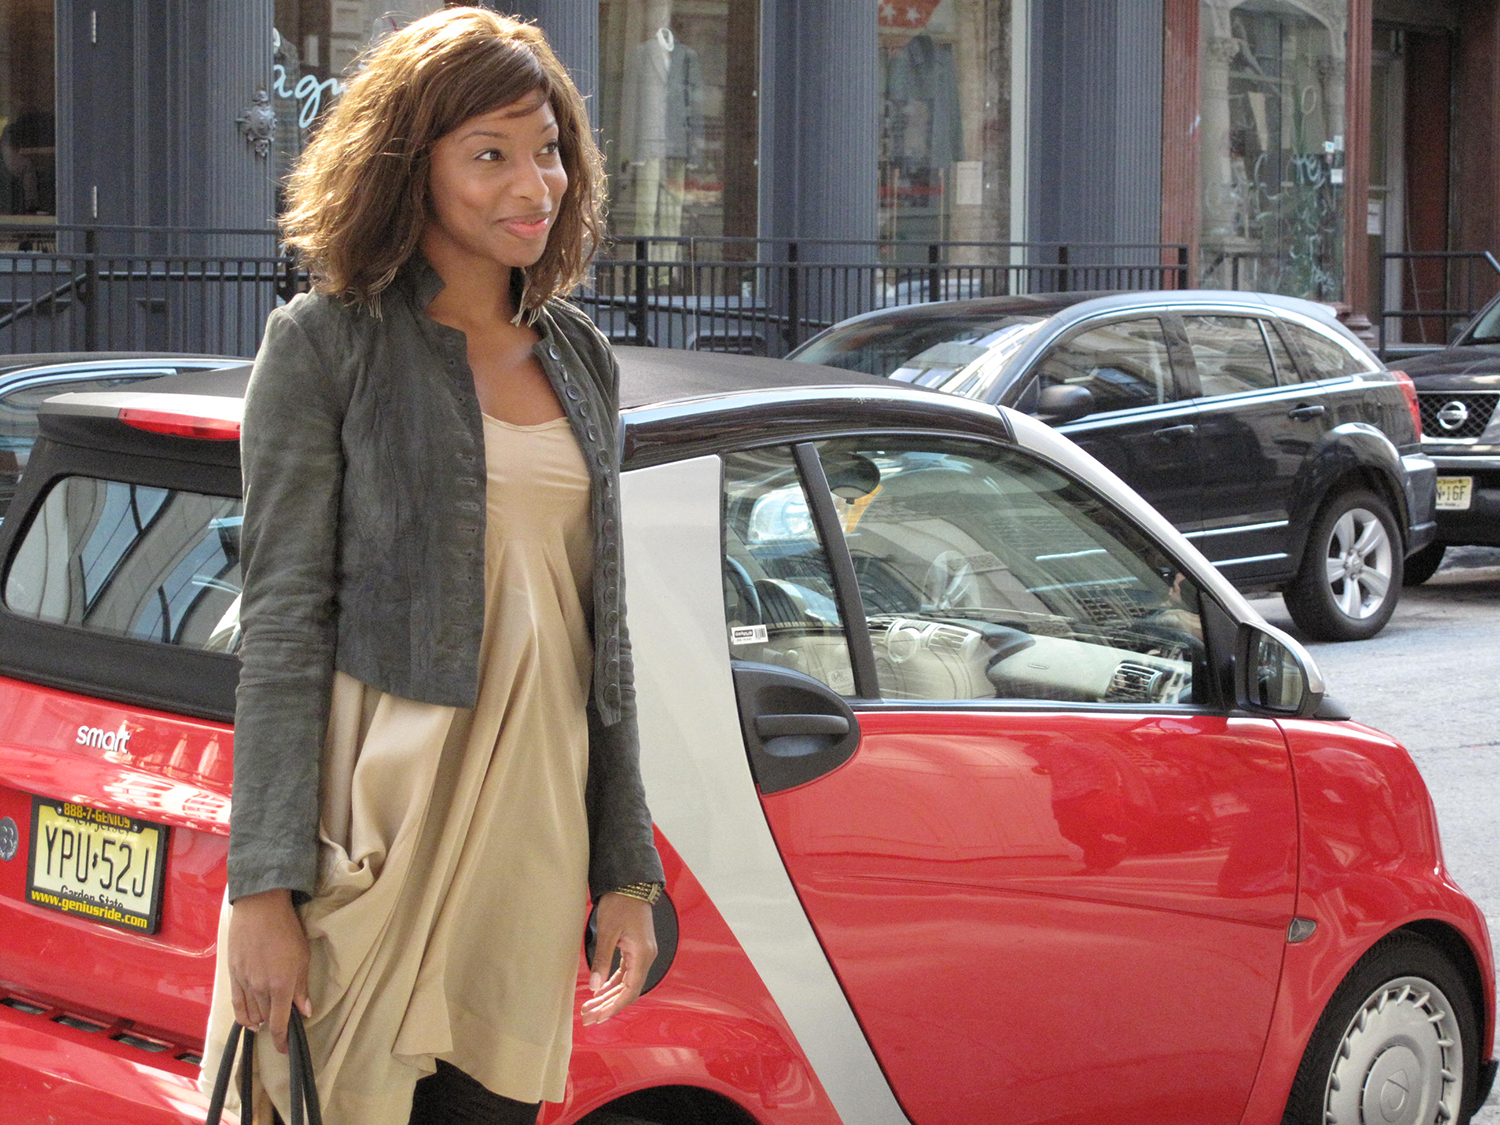 Morgan Gantt describes the virtues of driving a Smart Car in Soho, NYC.